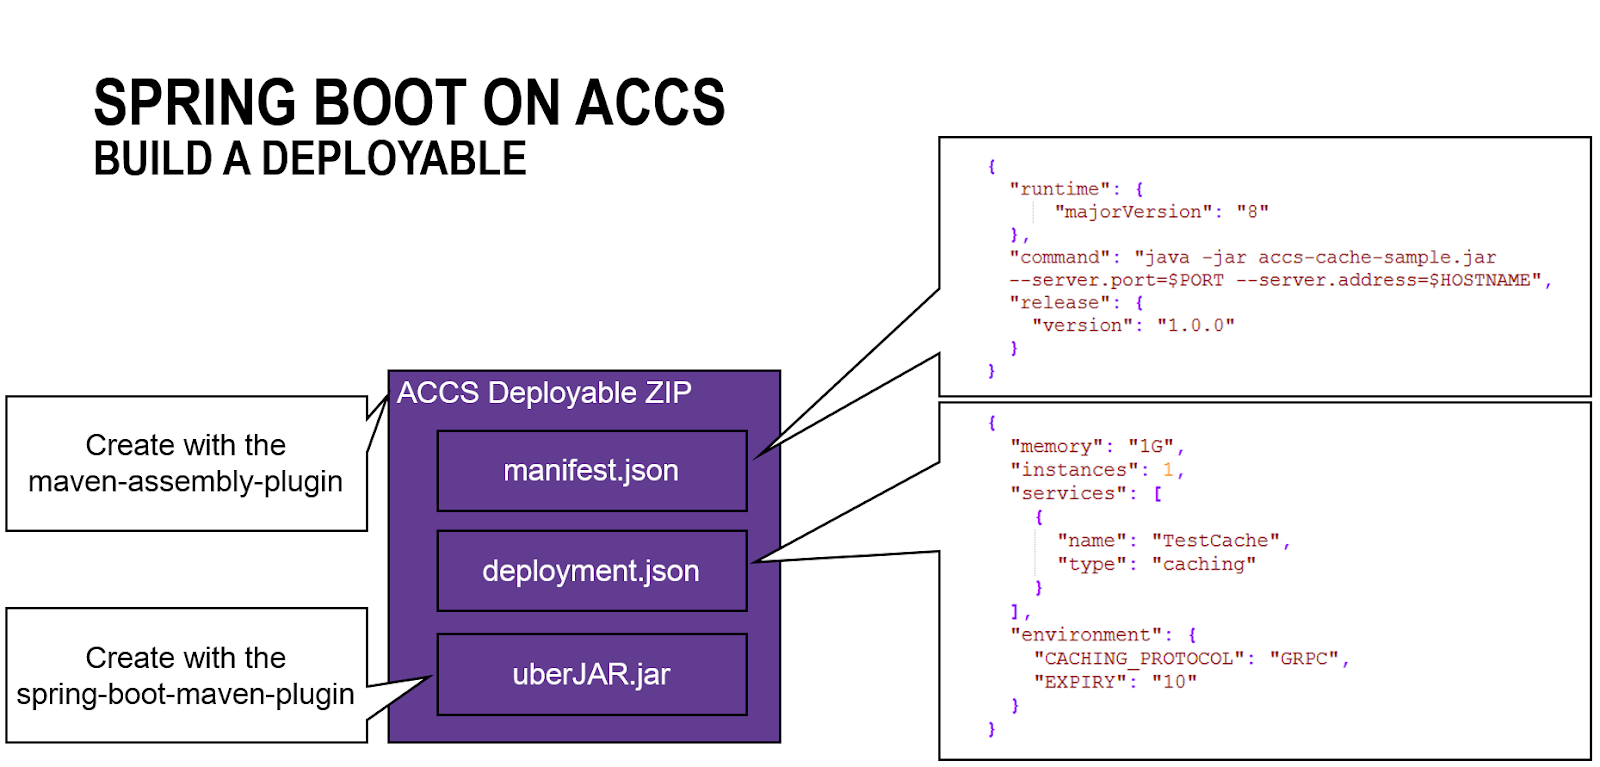 Oracle SOA / Java blog: Application Container Cloud Service (ACCS